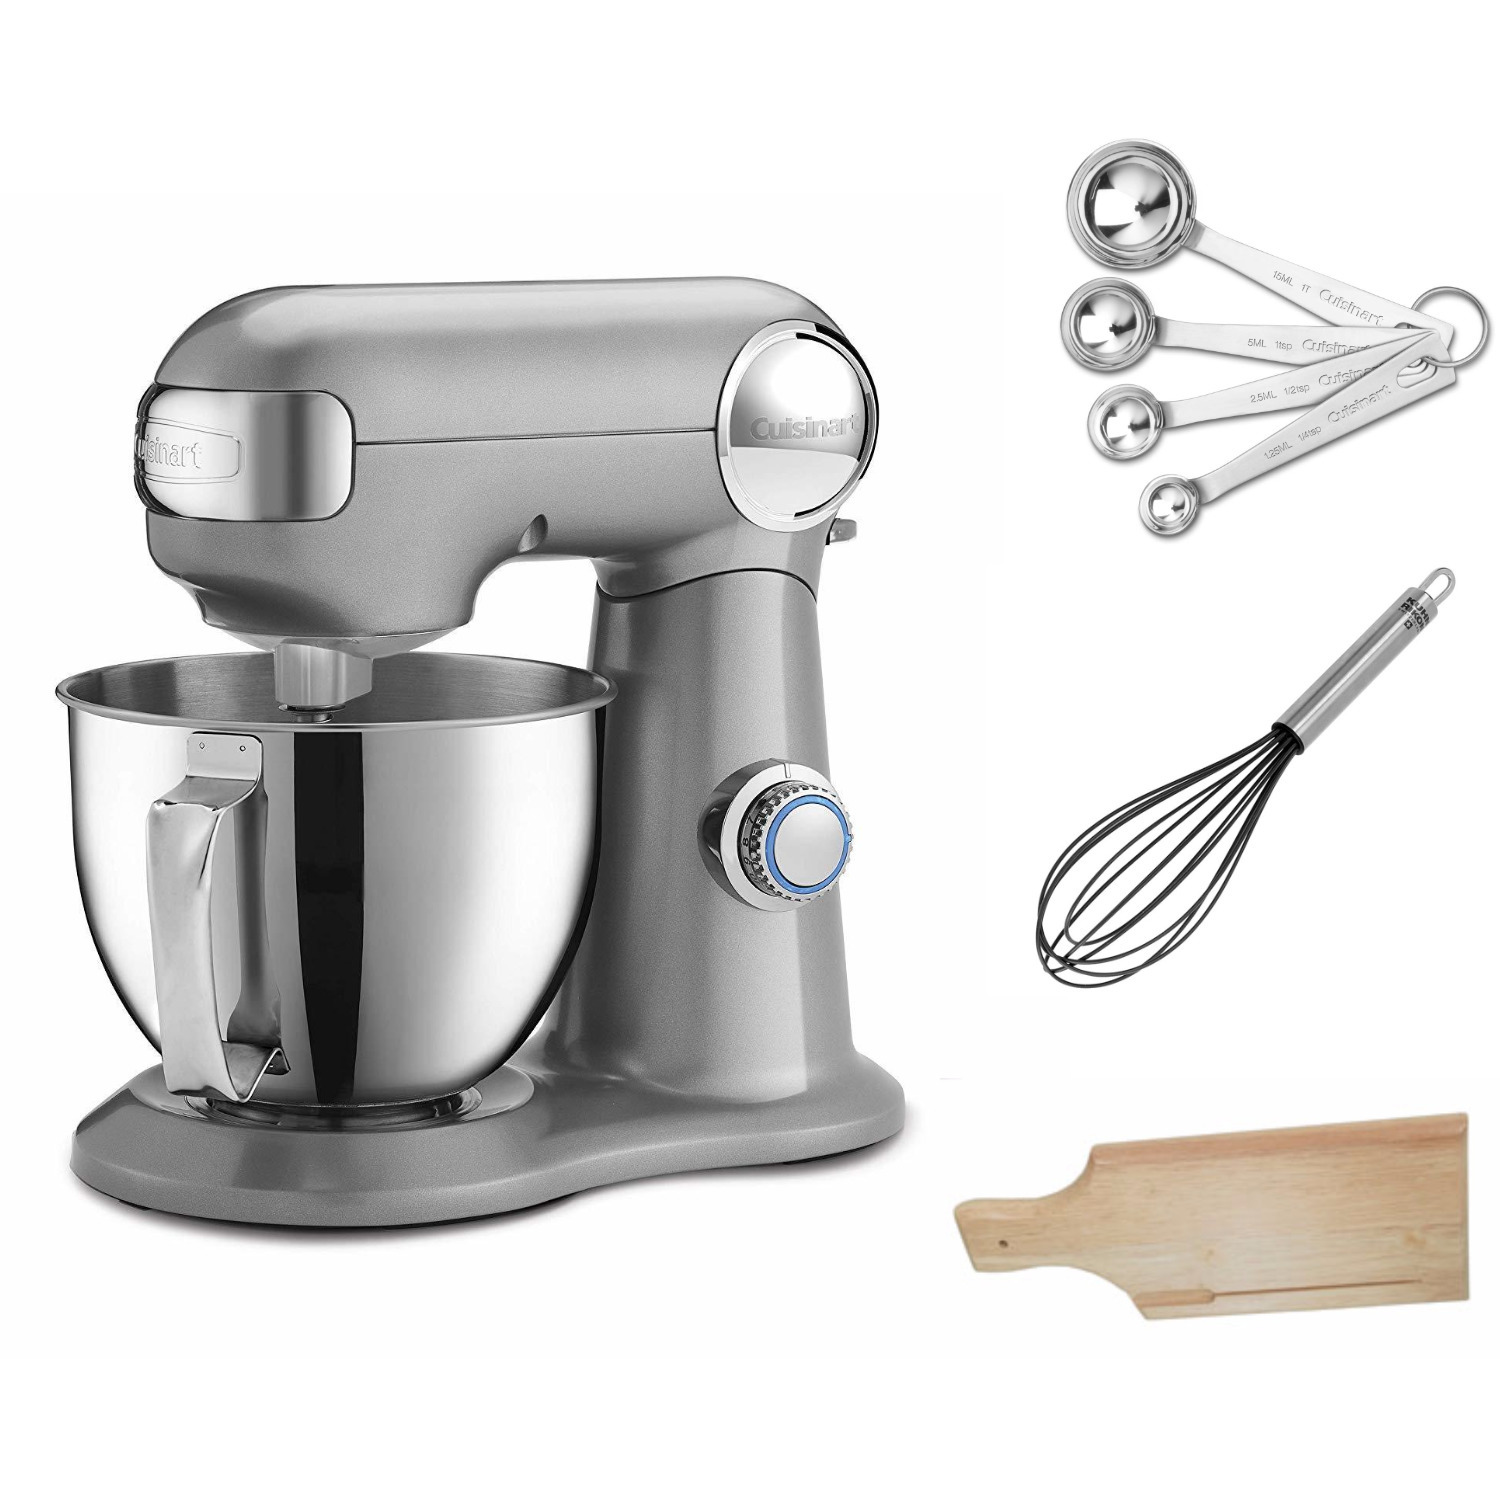 Cuisinart Precision Master 3.5 Quart Stand Mixer (Silver Lining) w/ Accessories